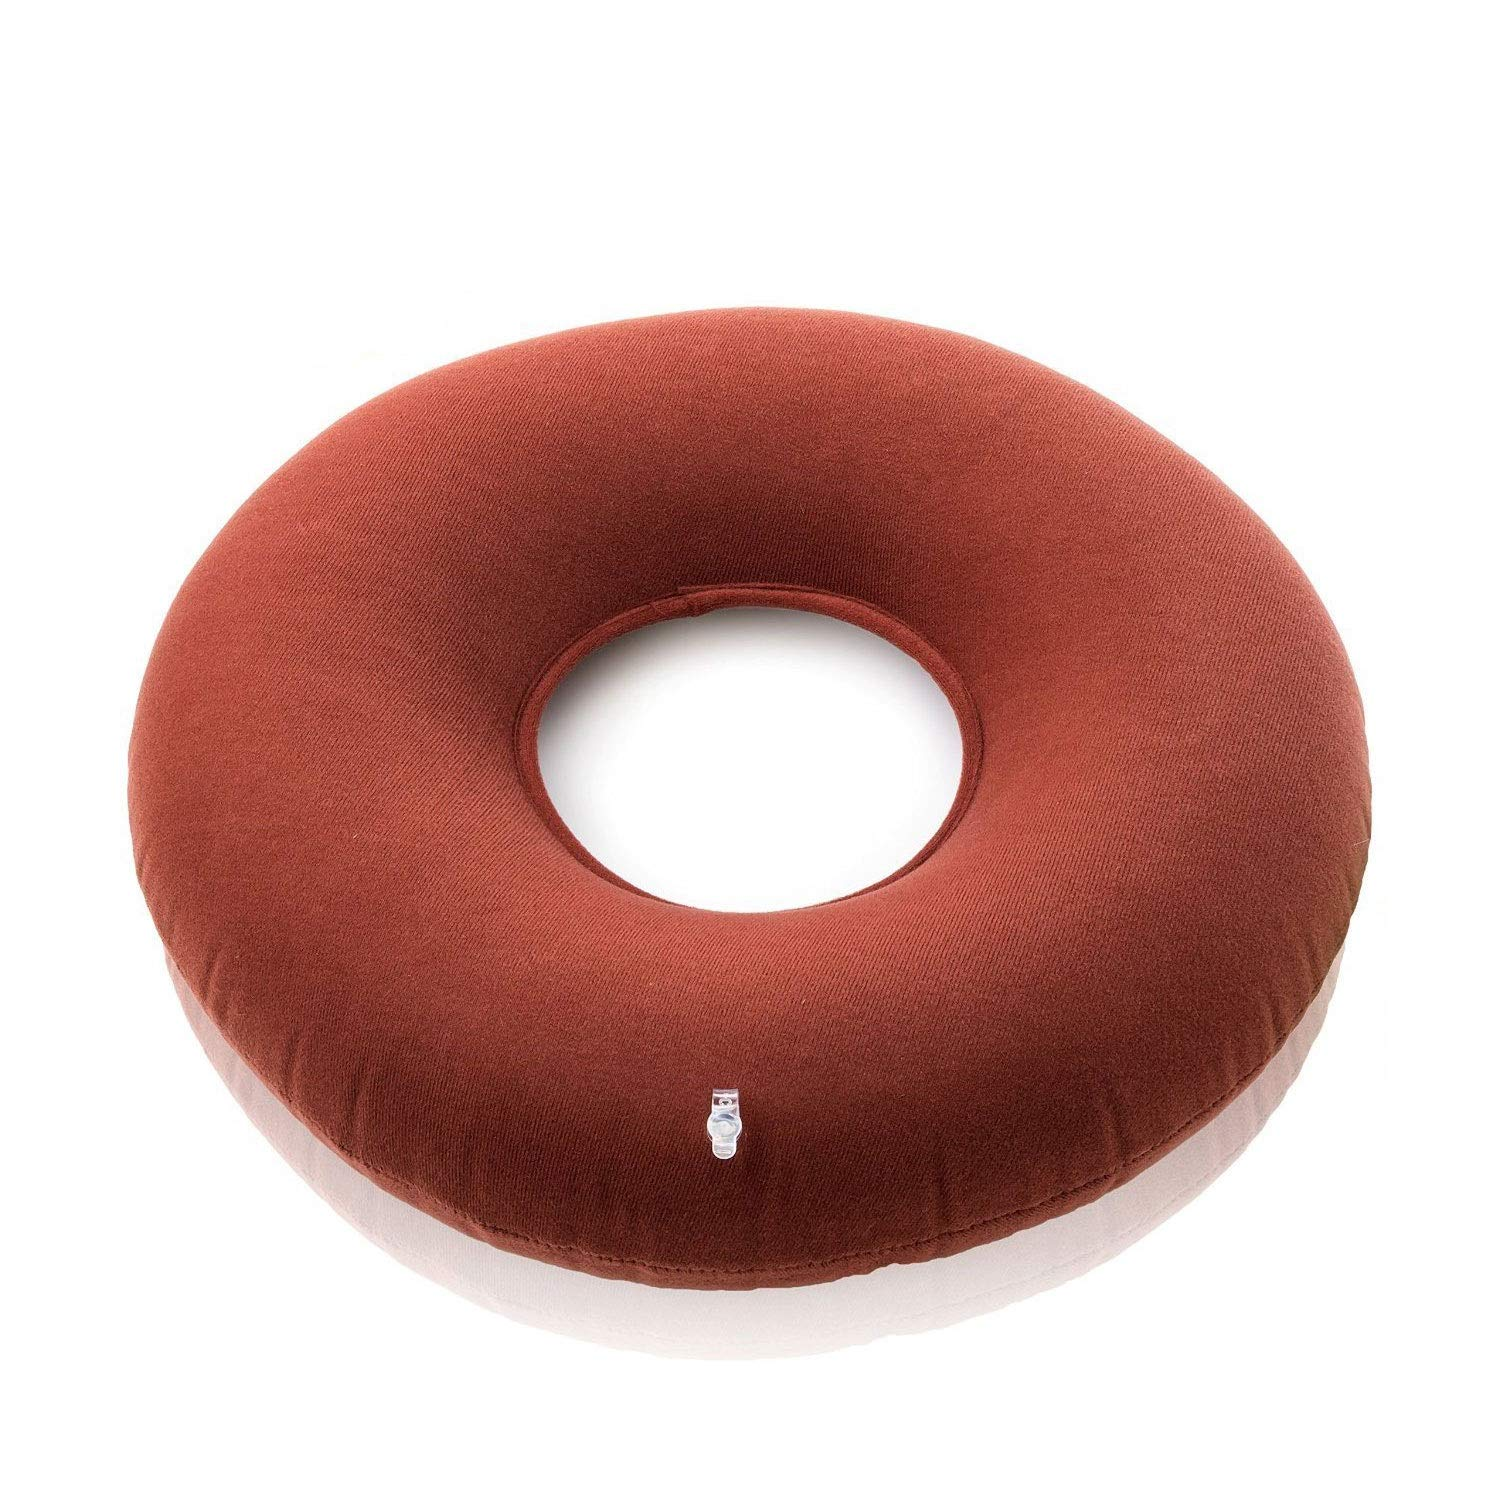 Jueven Premium Round Inflatable Donut Cushion Comfortable for Hemorrhoid,Back and Tailbone Pain Relief, Medical Donut Cushion Gas Gasket